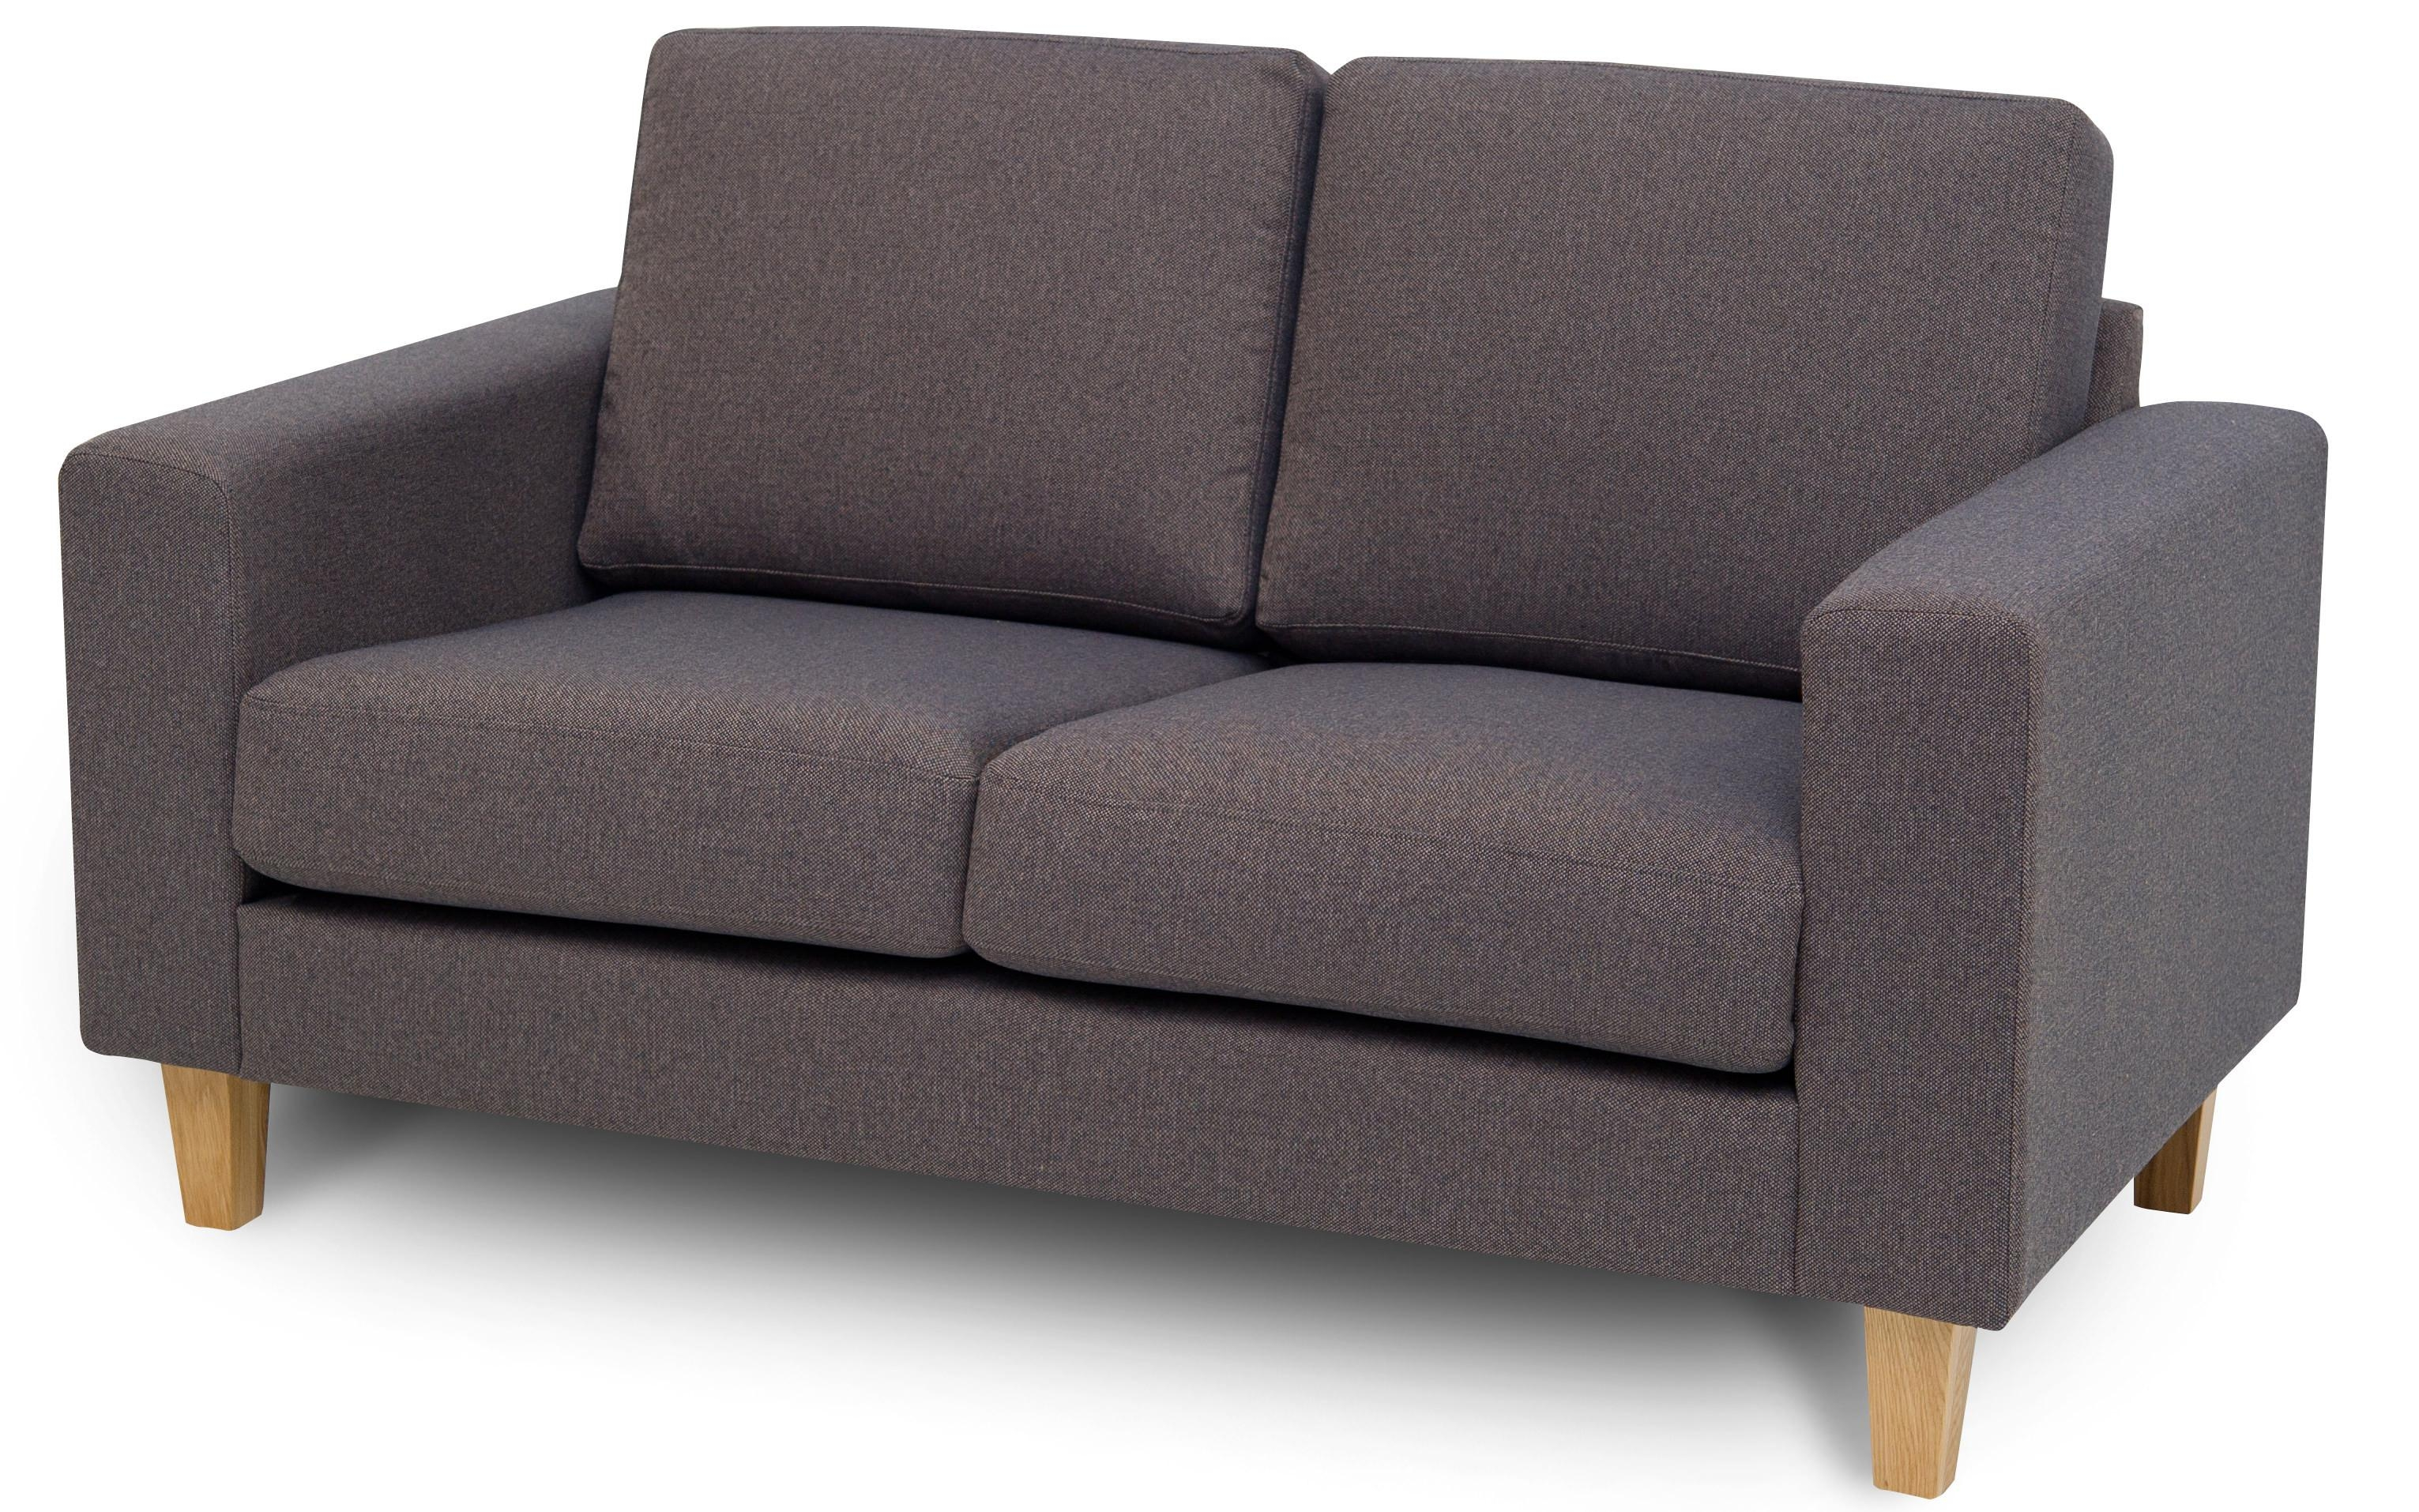 Dalton Two Seater Sofa | Designer Sofas| Buy At Kontenta With Regard To Two Seater Sofas (View 9 of 20)